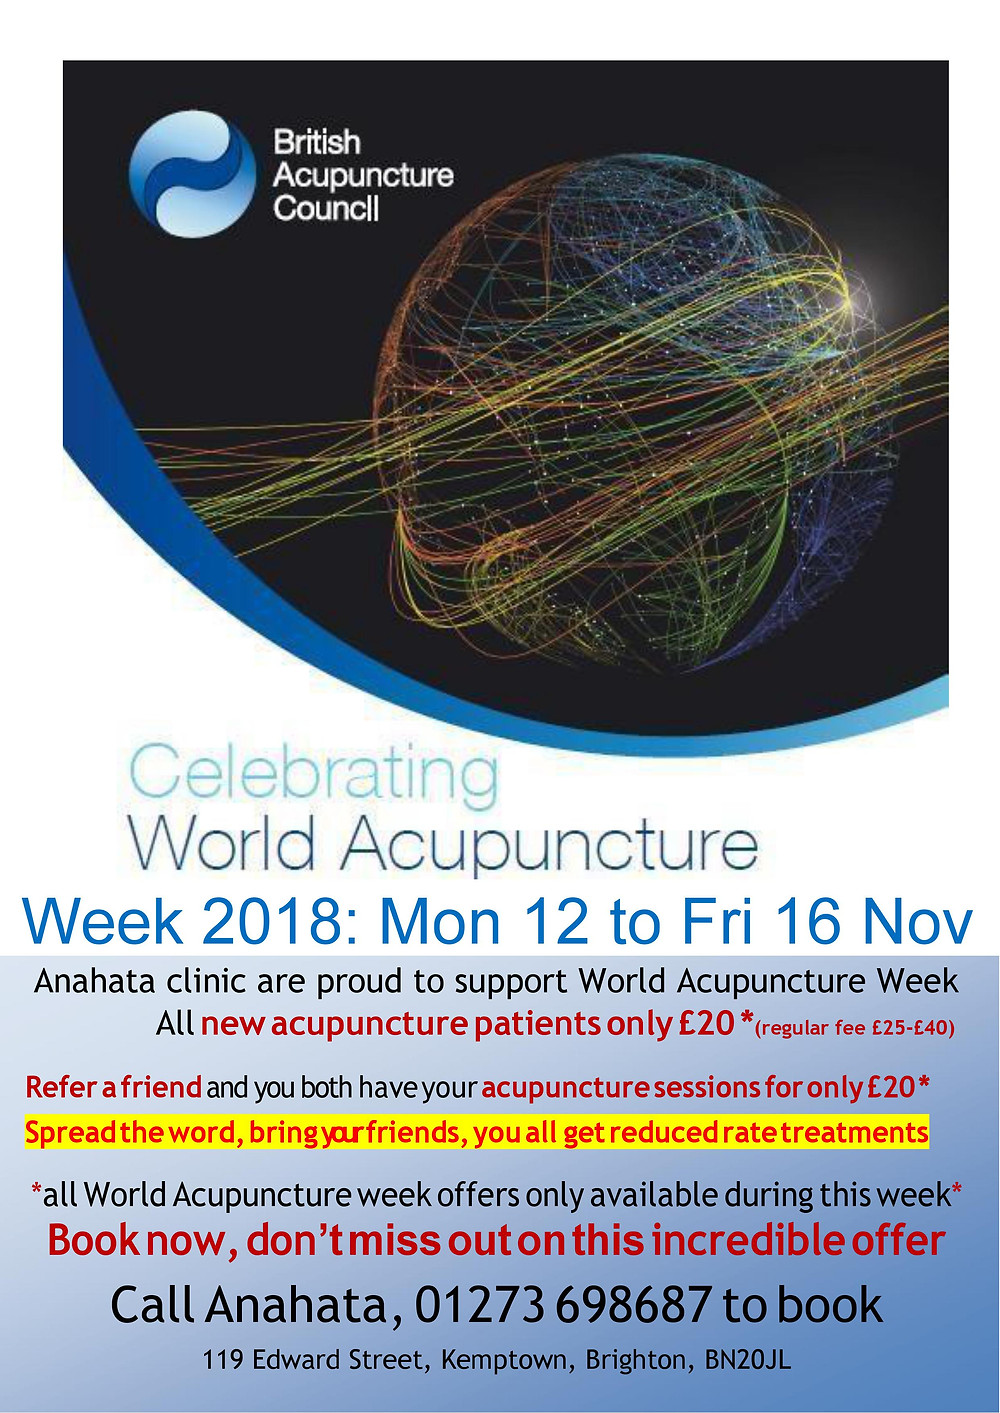 World Acupuncture Week spcial offer of £20 treatments